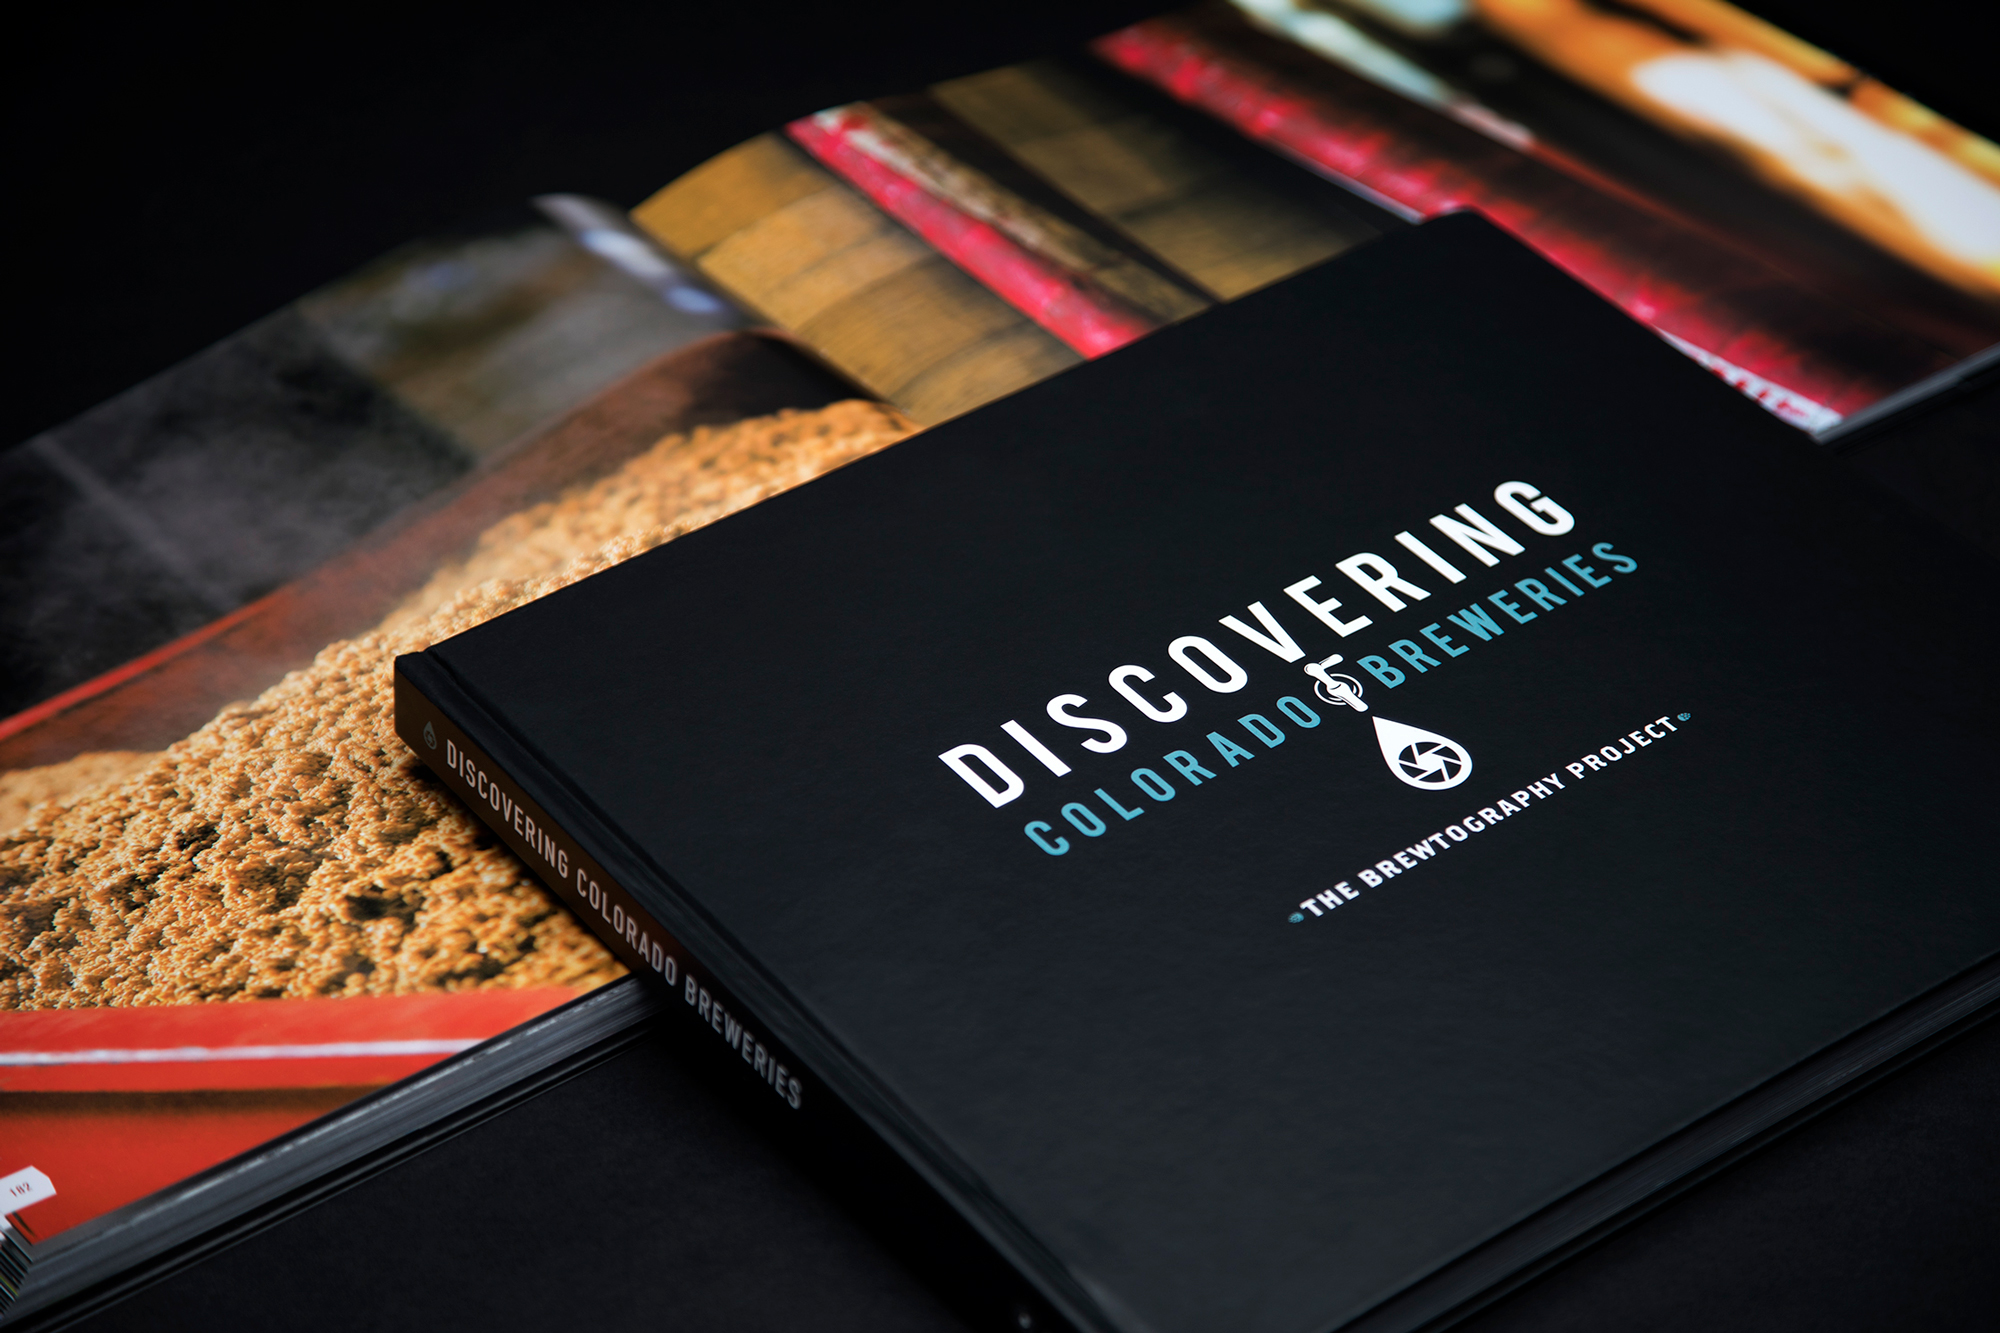 BrewtographyProject_DCB_Book_03.jpg